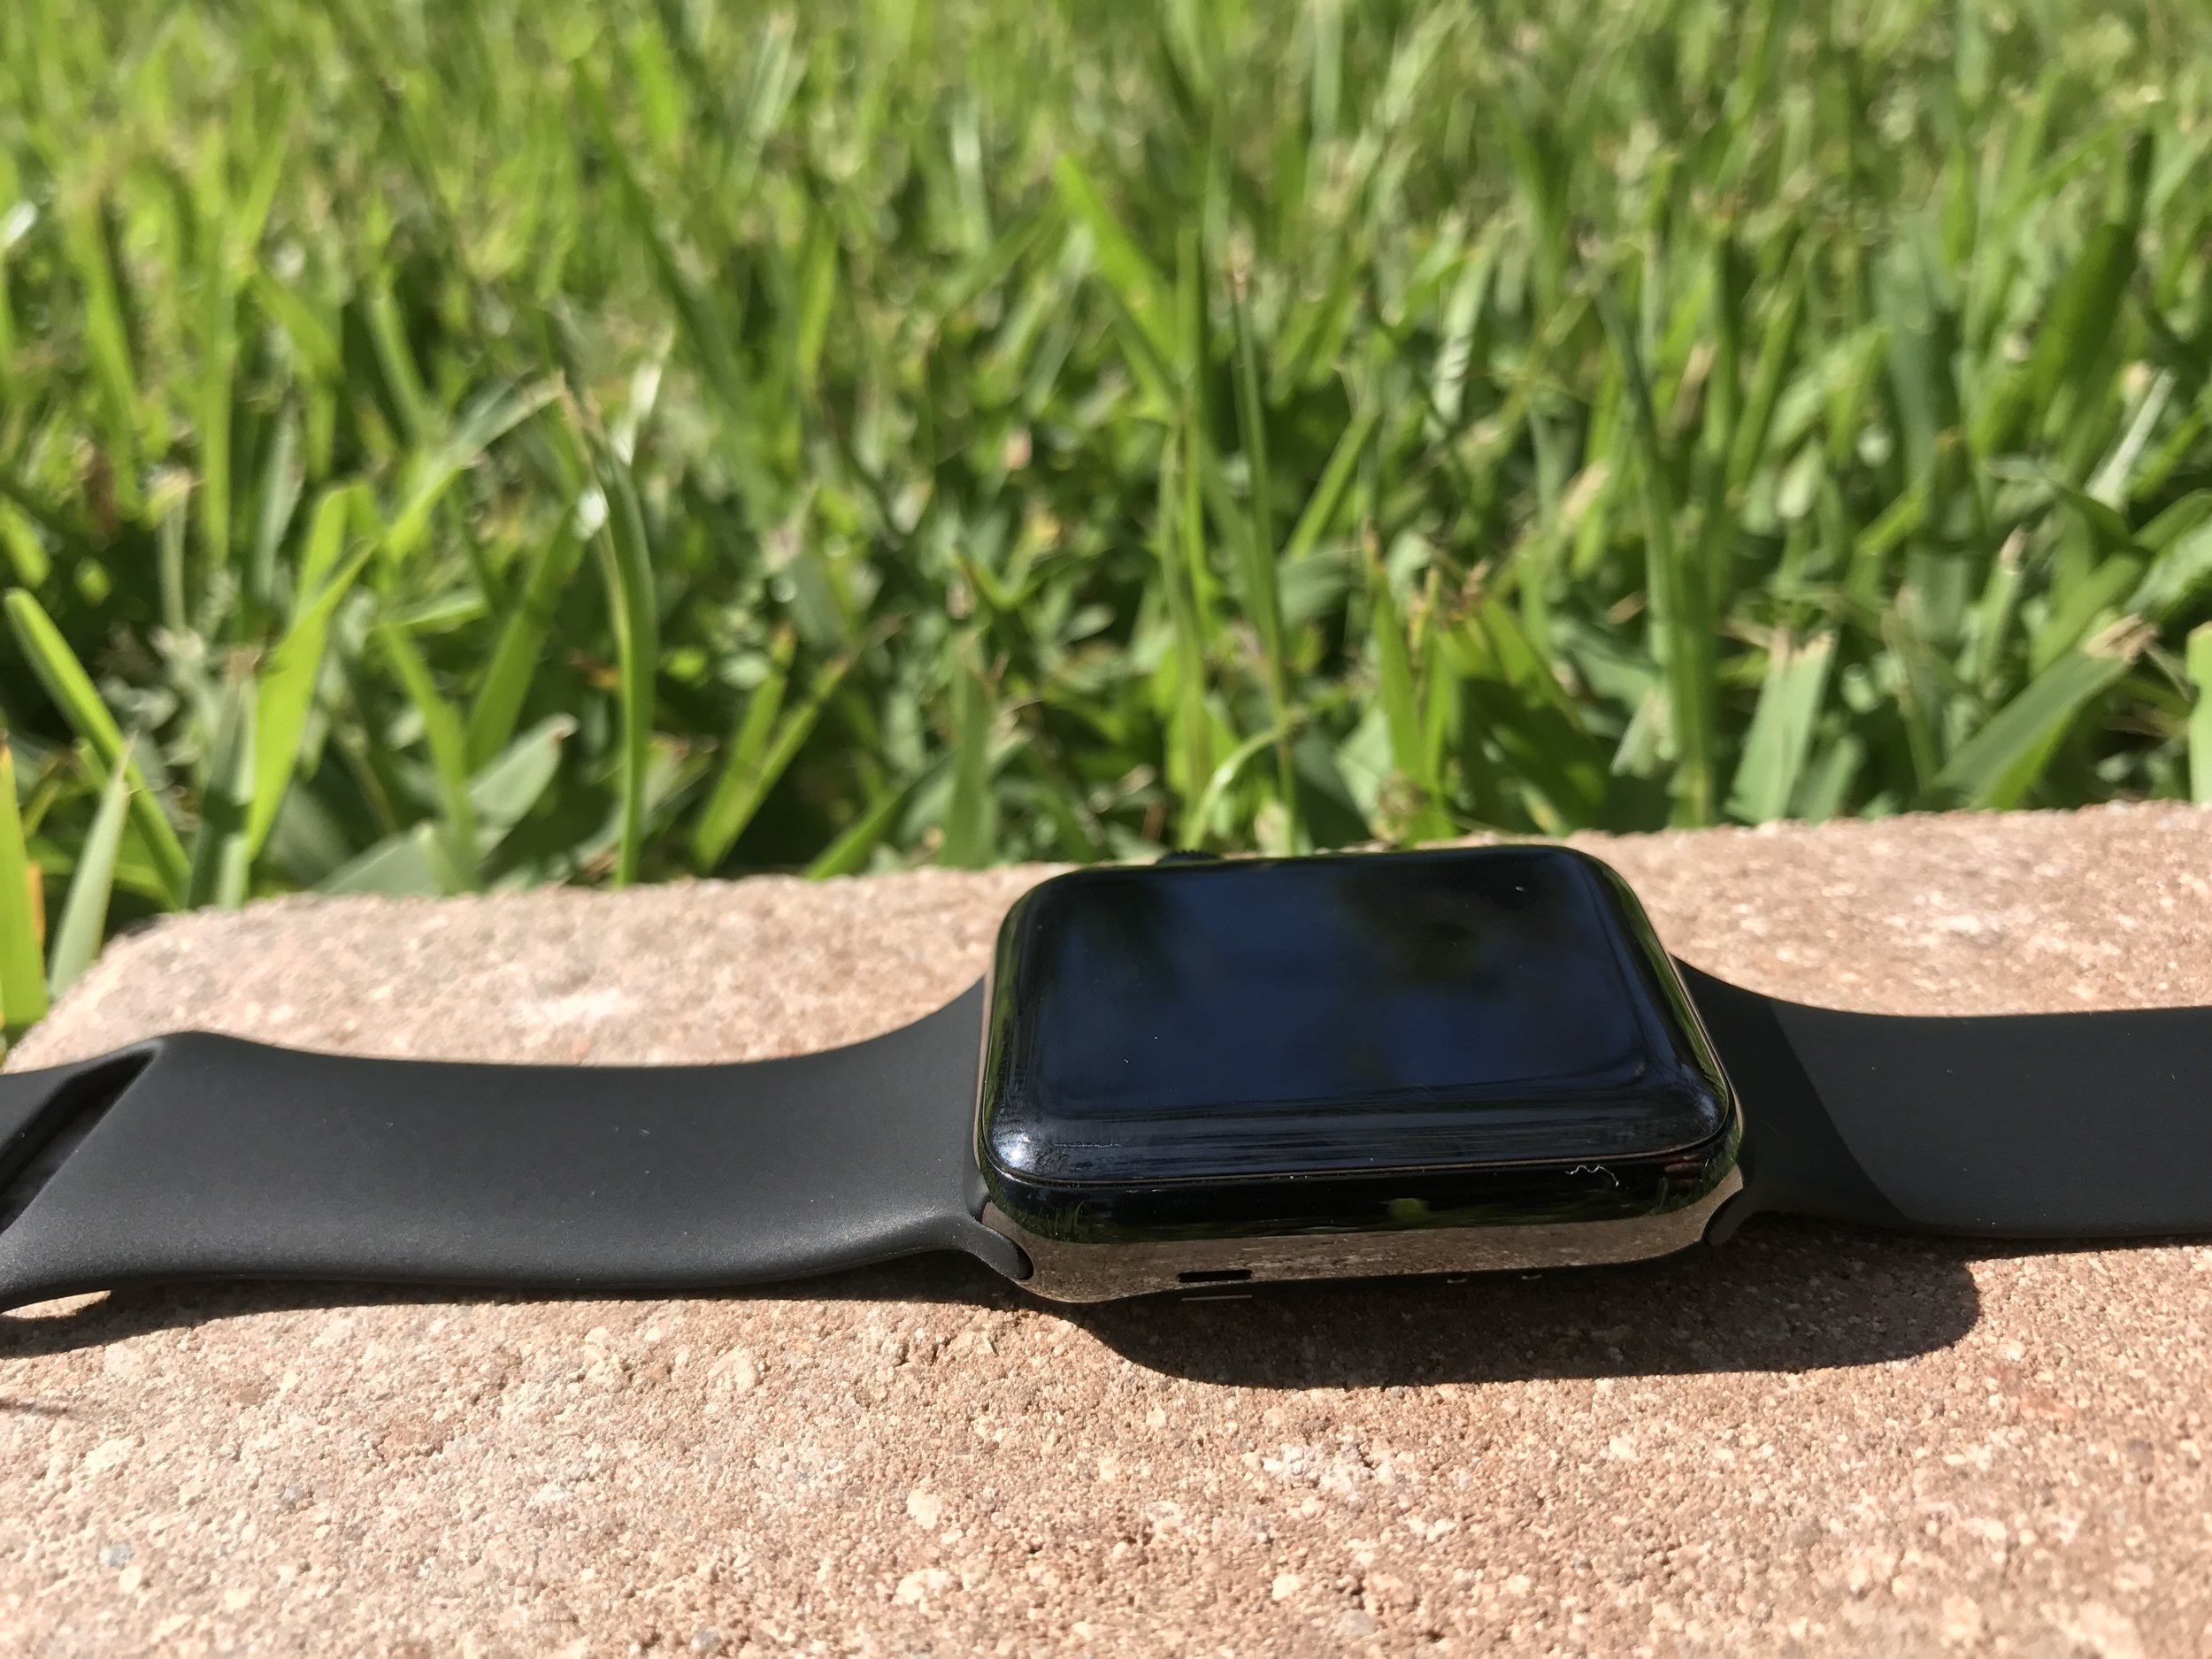 As you would expect, the black sports band that came with the watch looks great with the black stainless steel.